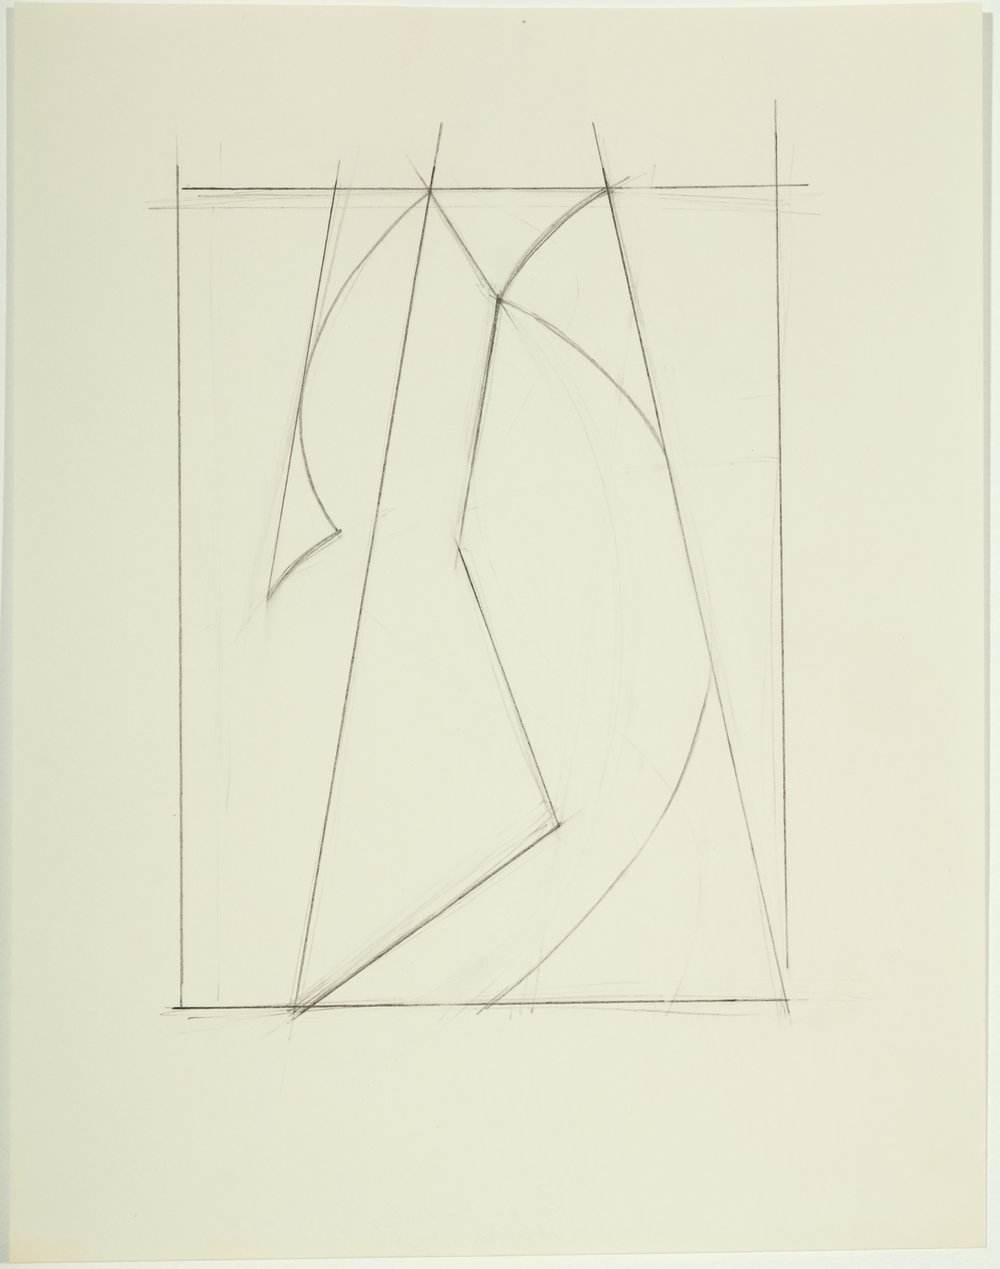 Untitled,  1983         Pencil on paper 11H x 8.5W inches unframed $2,500 unframed $2,2725 framed